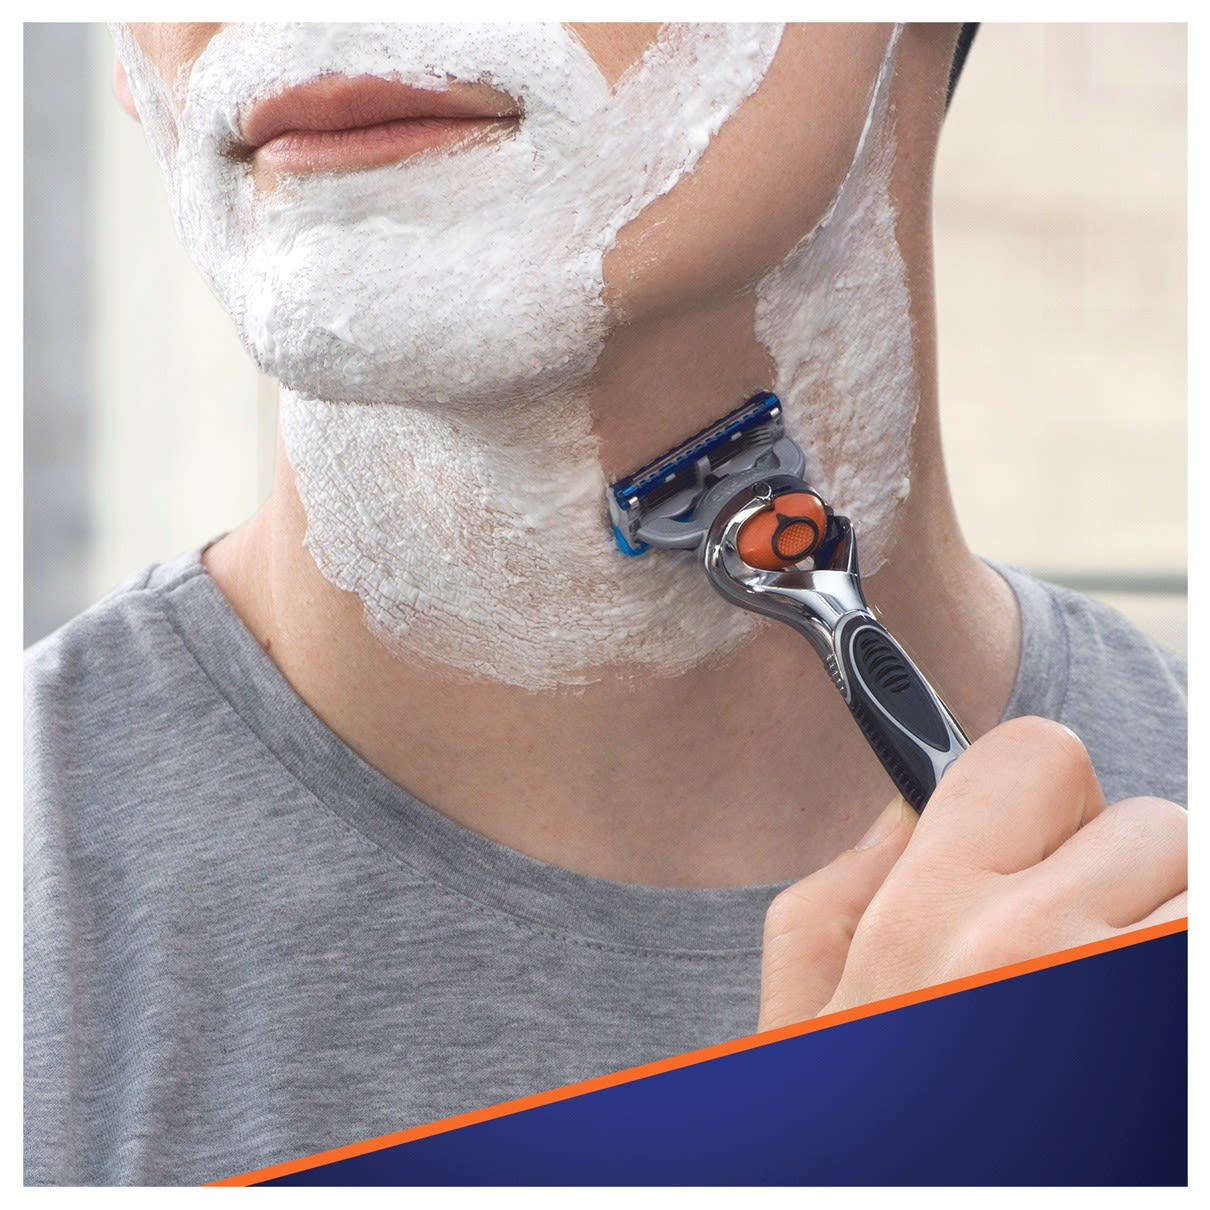 9. 1 refill = up to 1 month of shaves